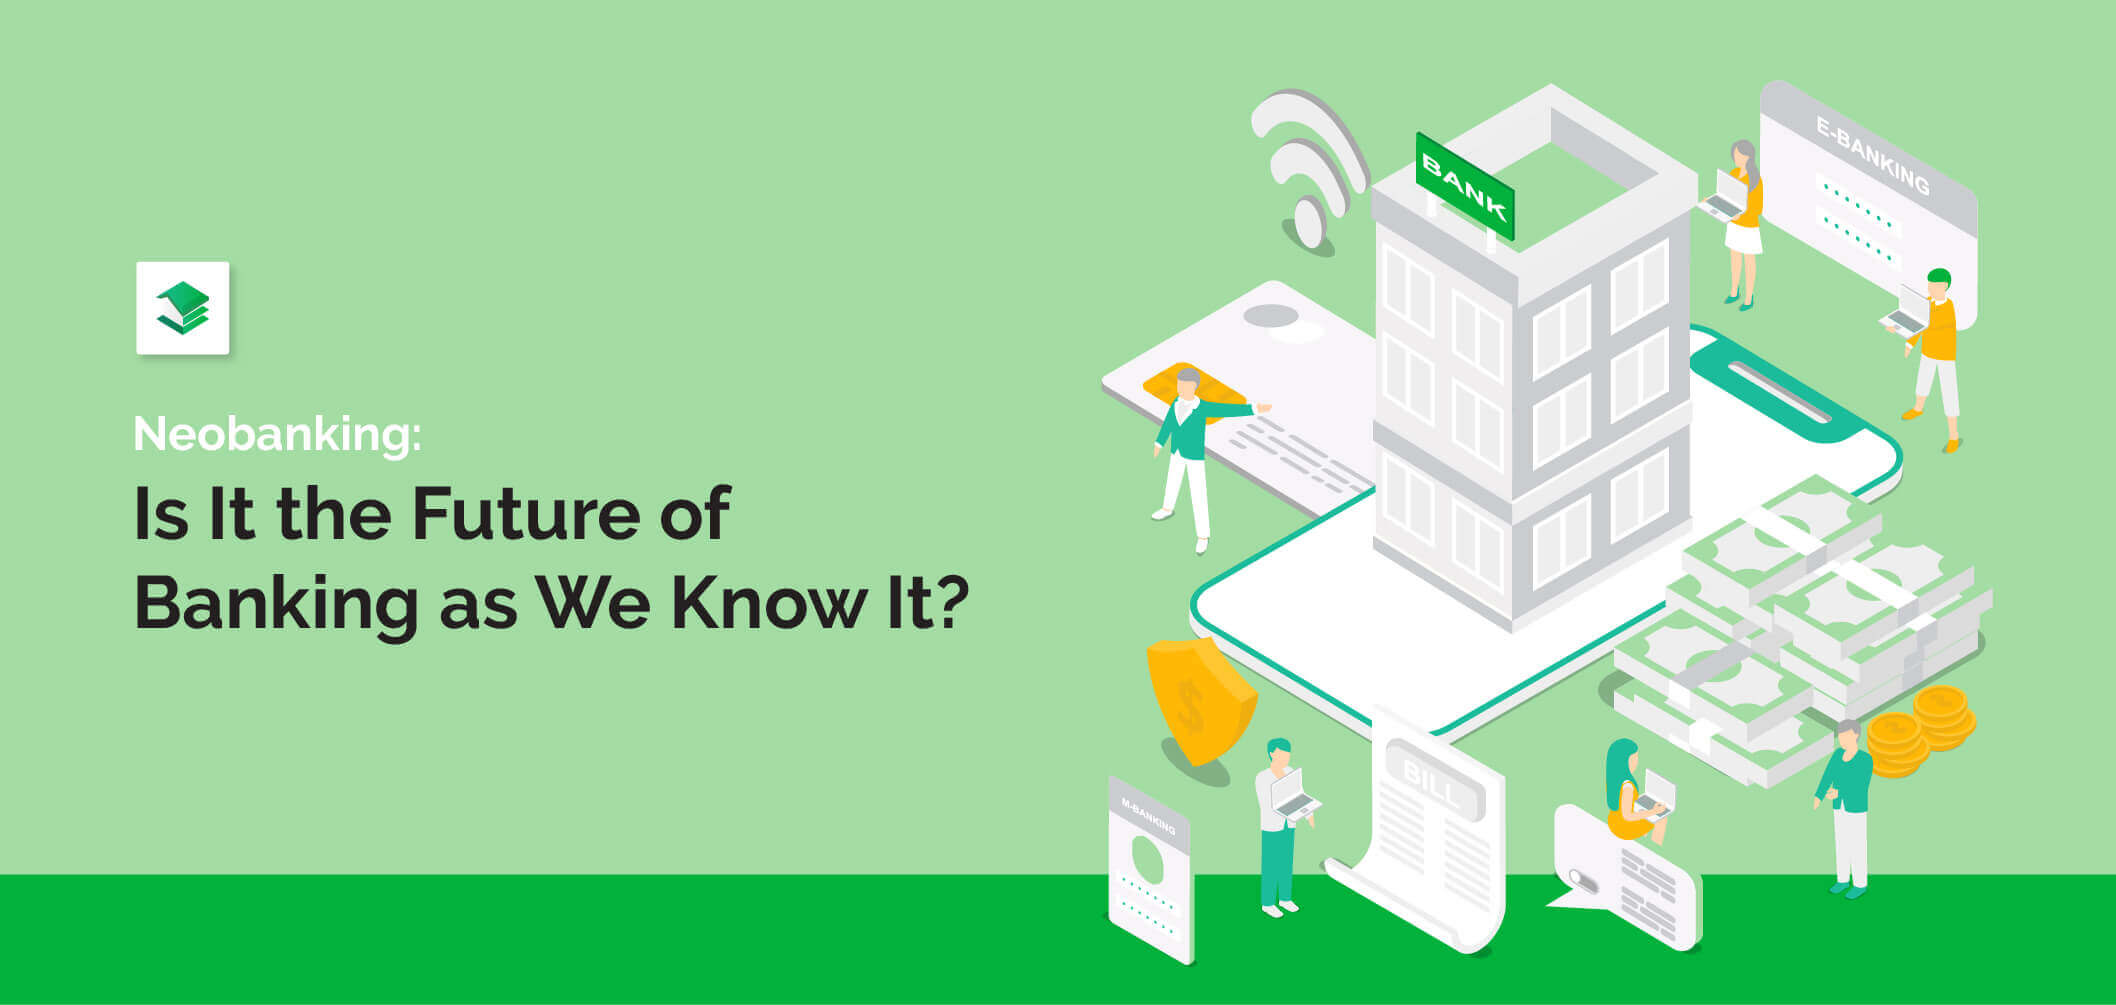 is-it-the-future-of-banking-as-we-know-it